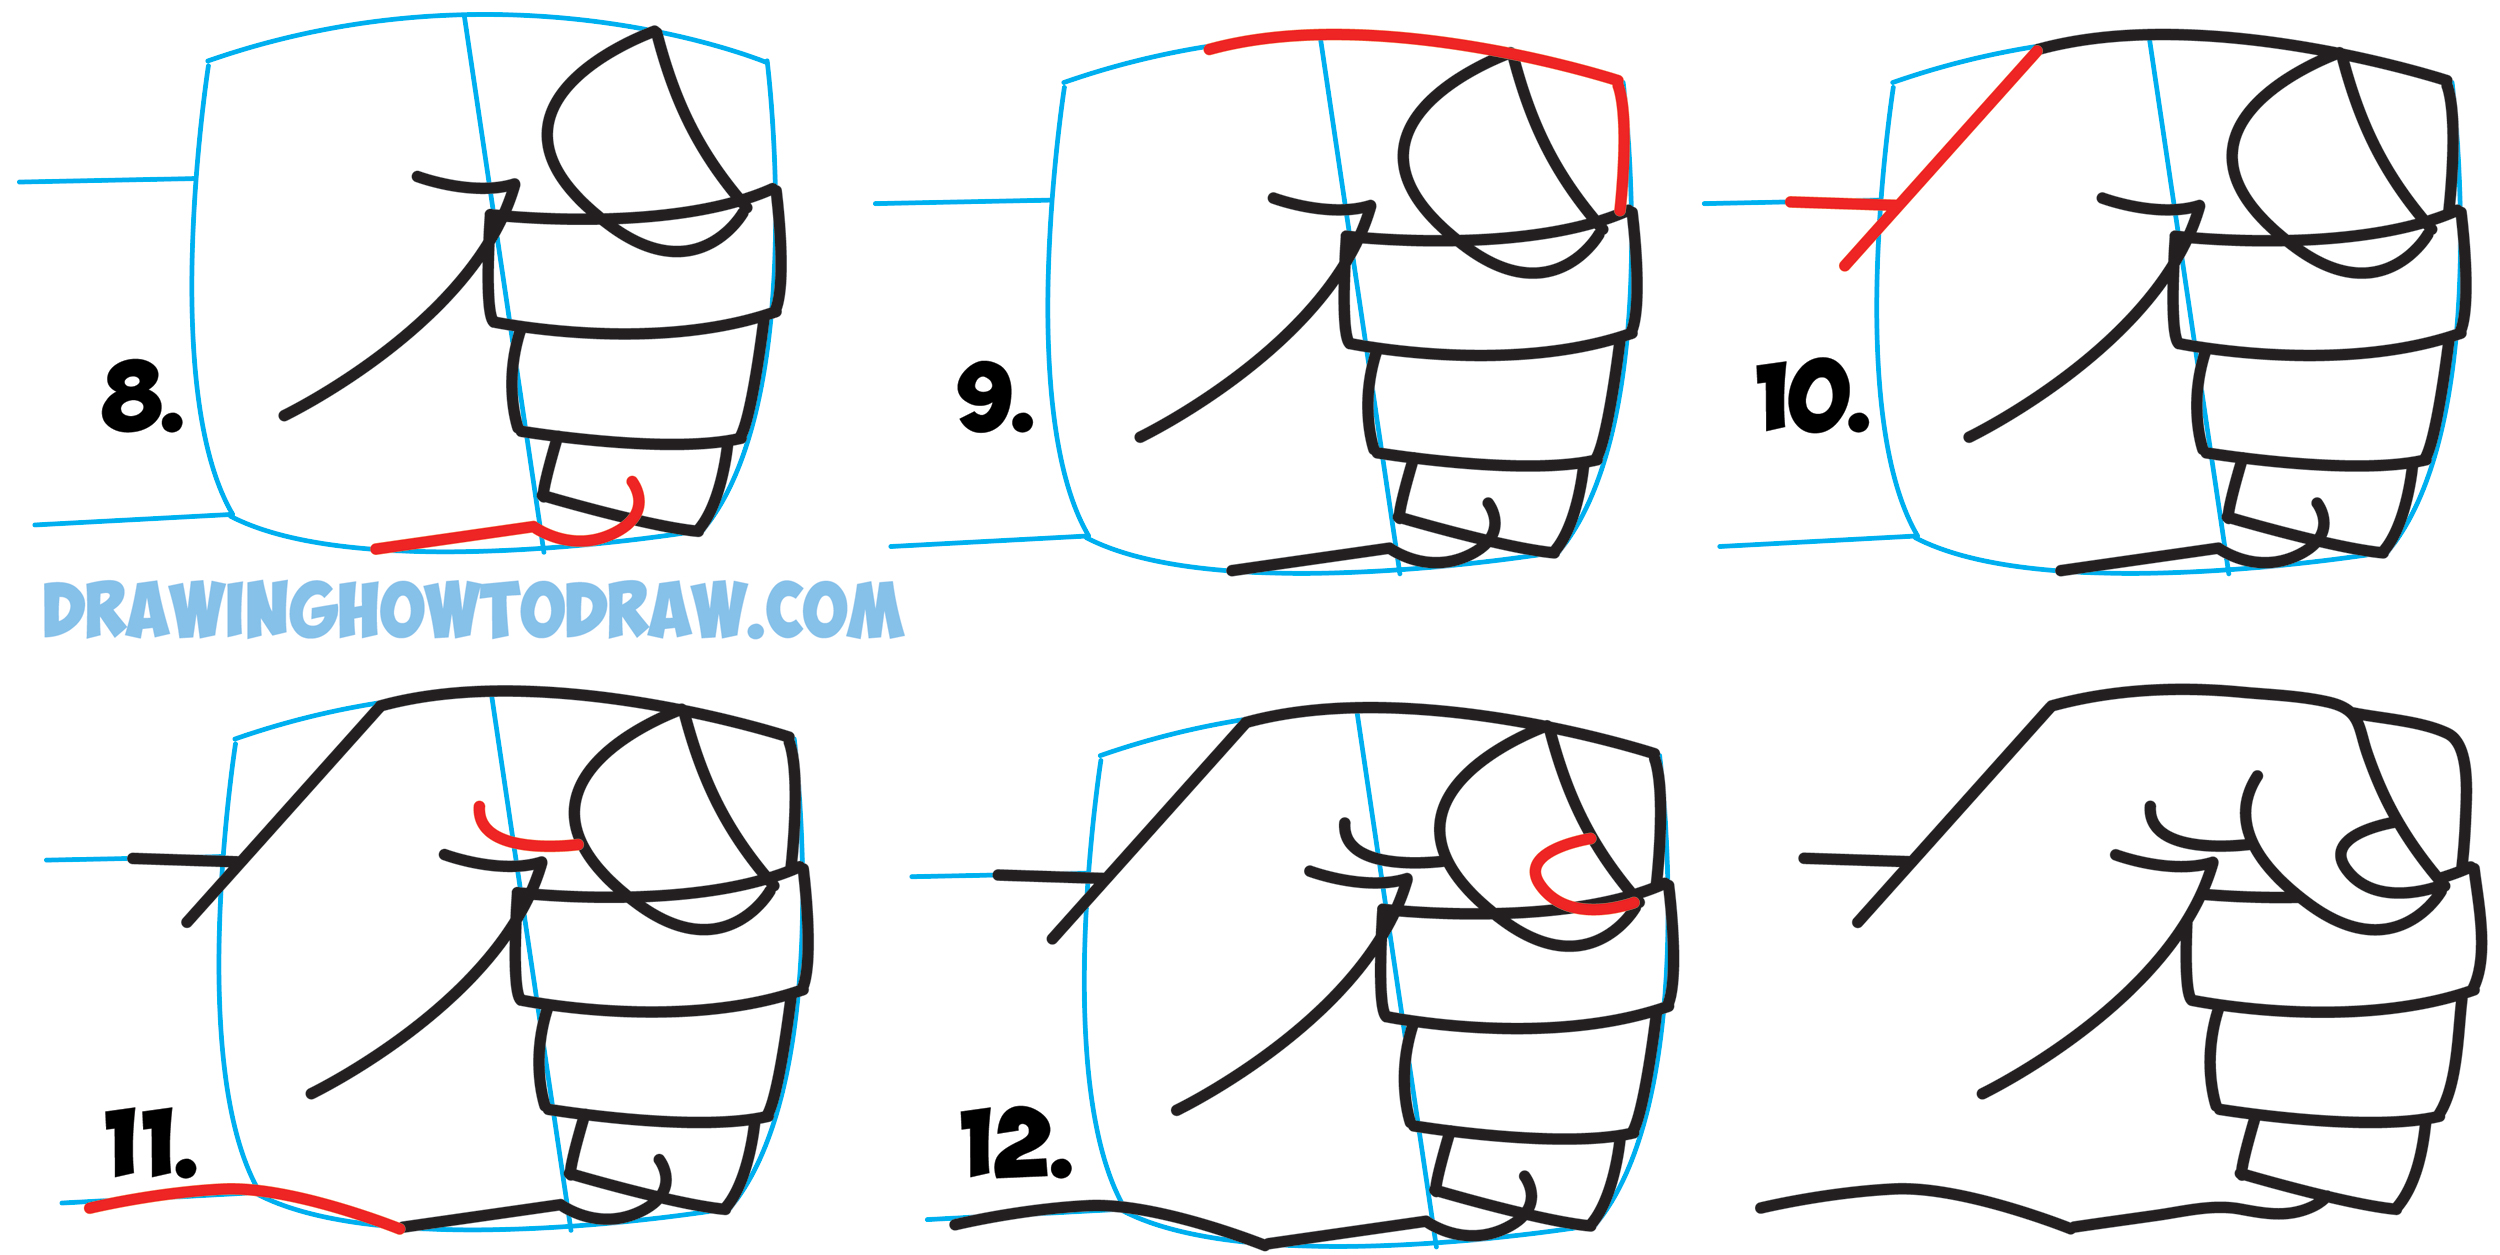 Learn How to Draw Cartoon Fists Side View Pounding Down : Drawing Cartoon Clenched Fists : Easy Step by Step Drawing Tutorial